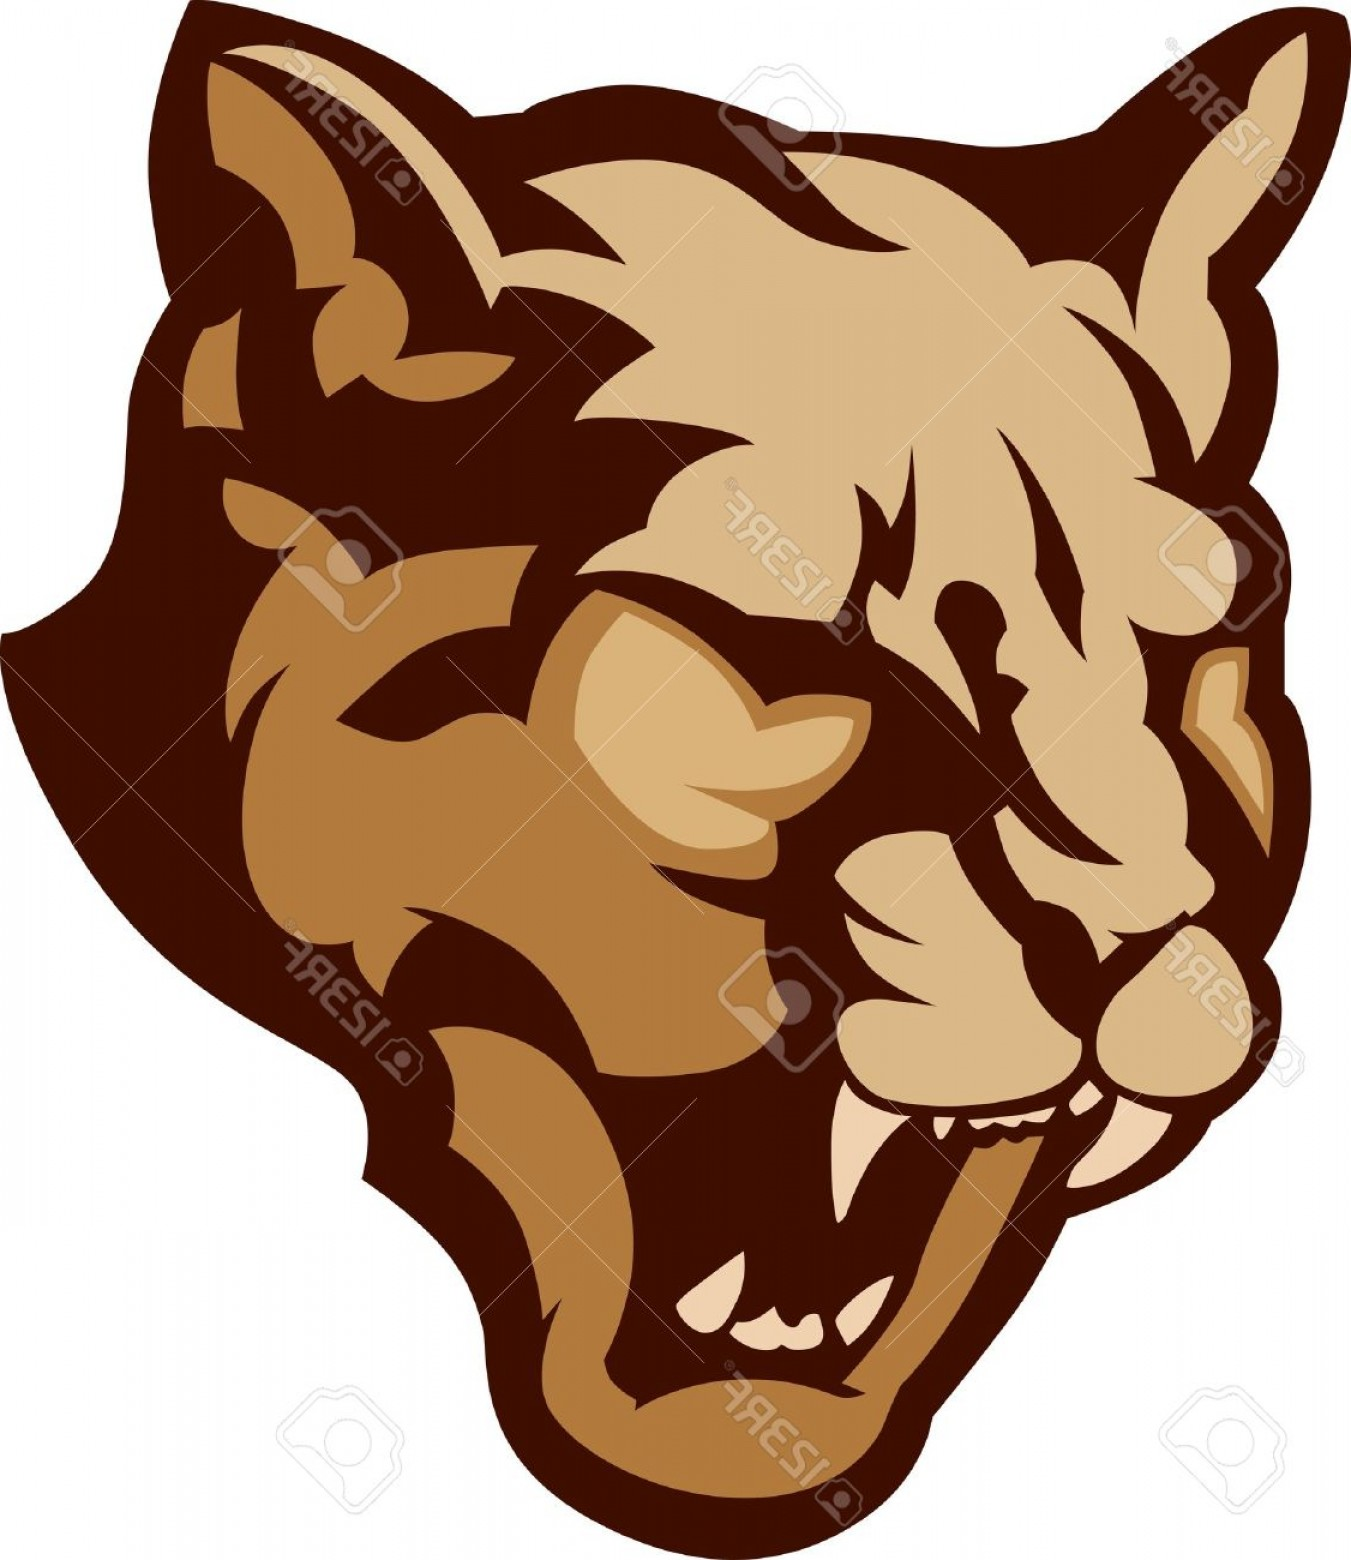 Cougar Logo Vector: Photographic Mascot Vector Image Of A Cougar Head